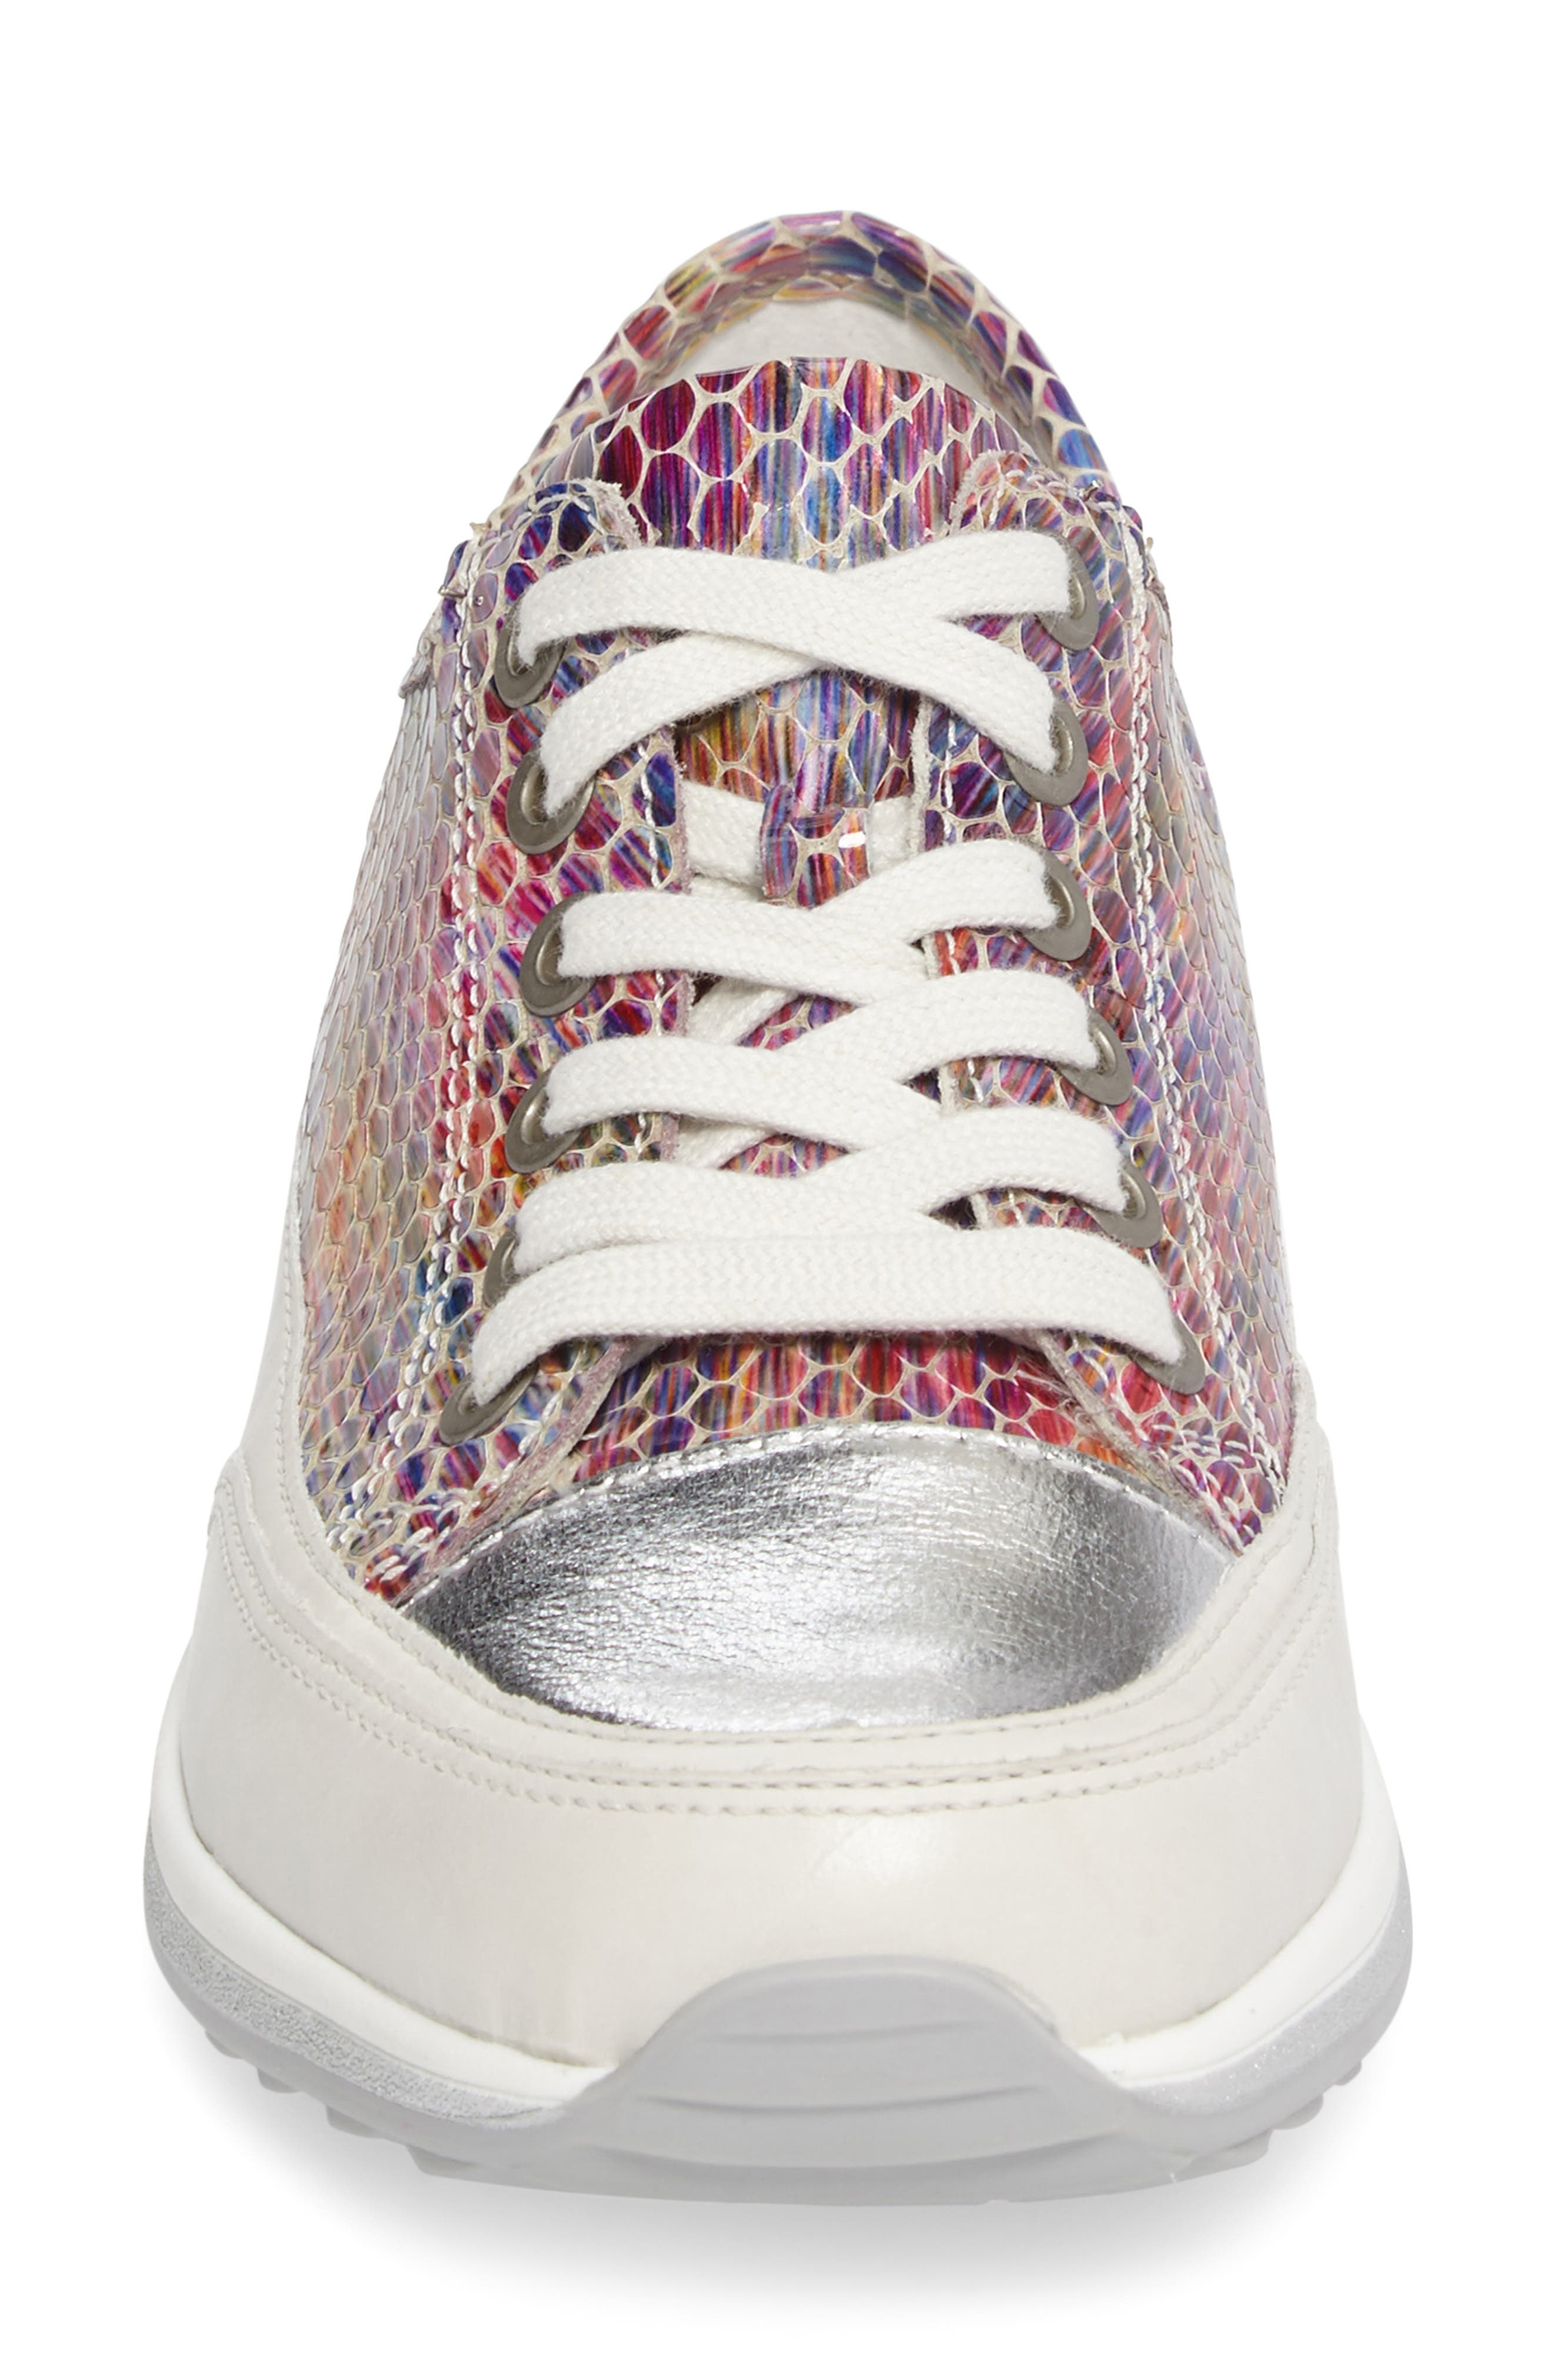 Hermione Sneaker,                             Alternate thumbnail 4, color,                             WHITE MULTI LEATHER